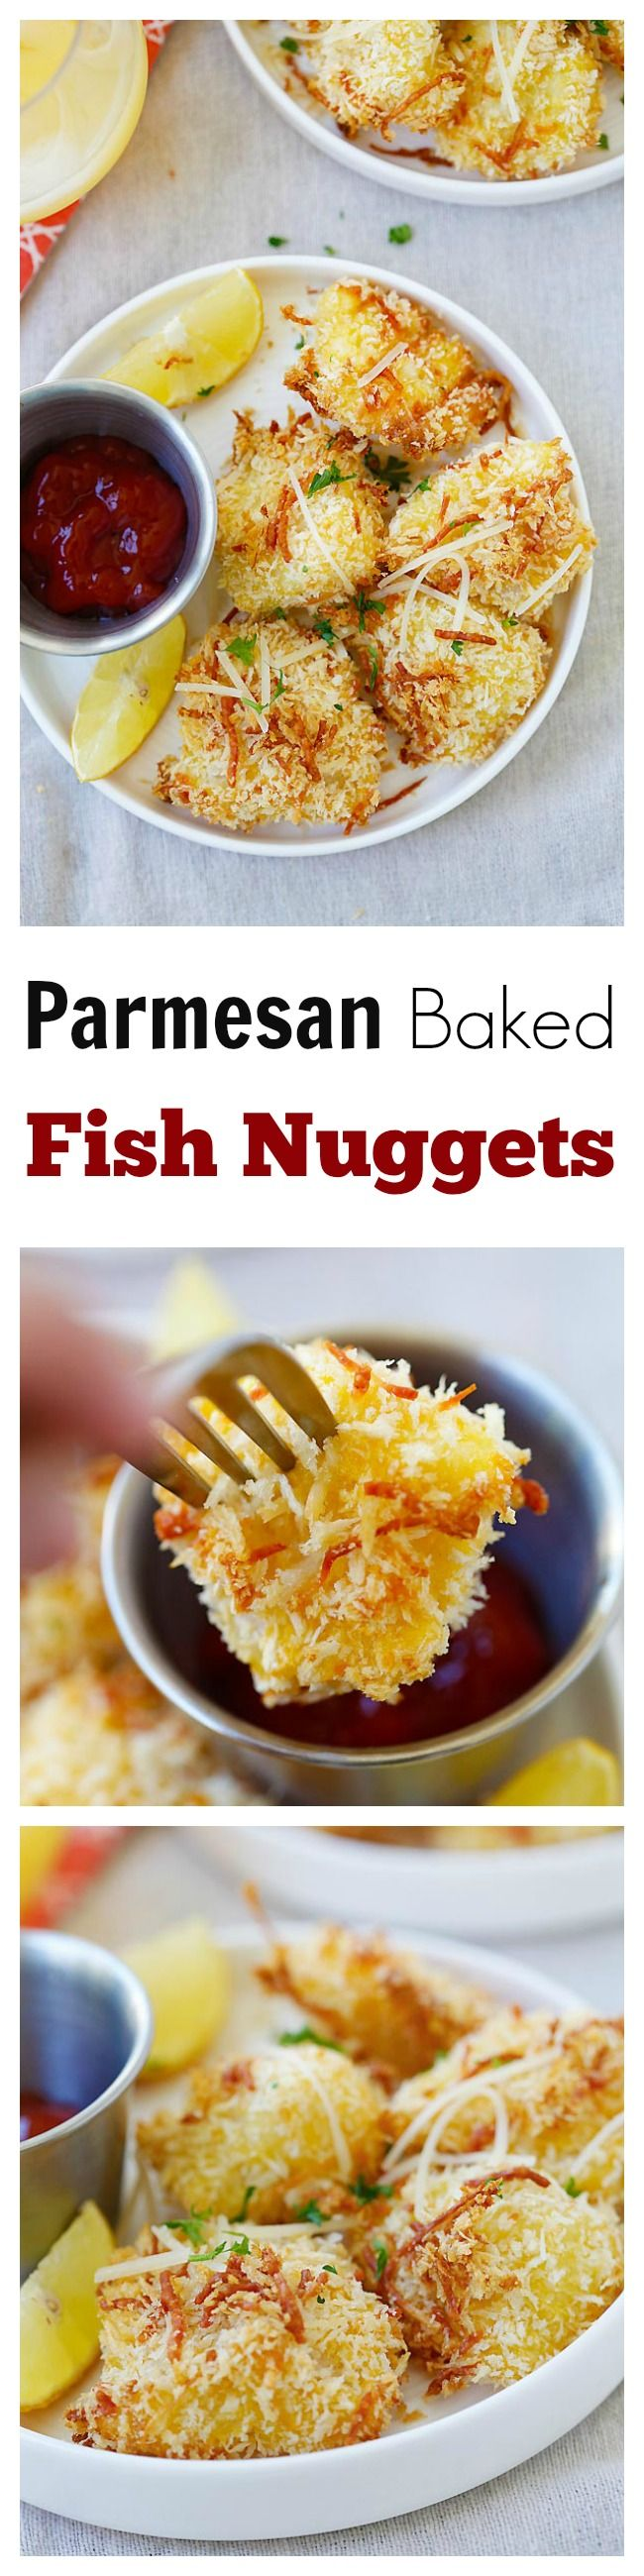 Parmesan Baked Fish Nuggets - crispy fish nuggets with cod fish and no frying. SO easy and delicious, perfect for kids and the entire family!! | rasamalaysia.com